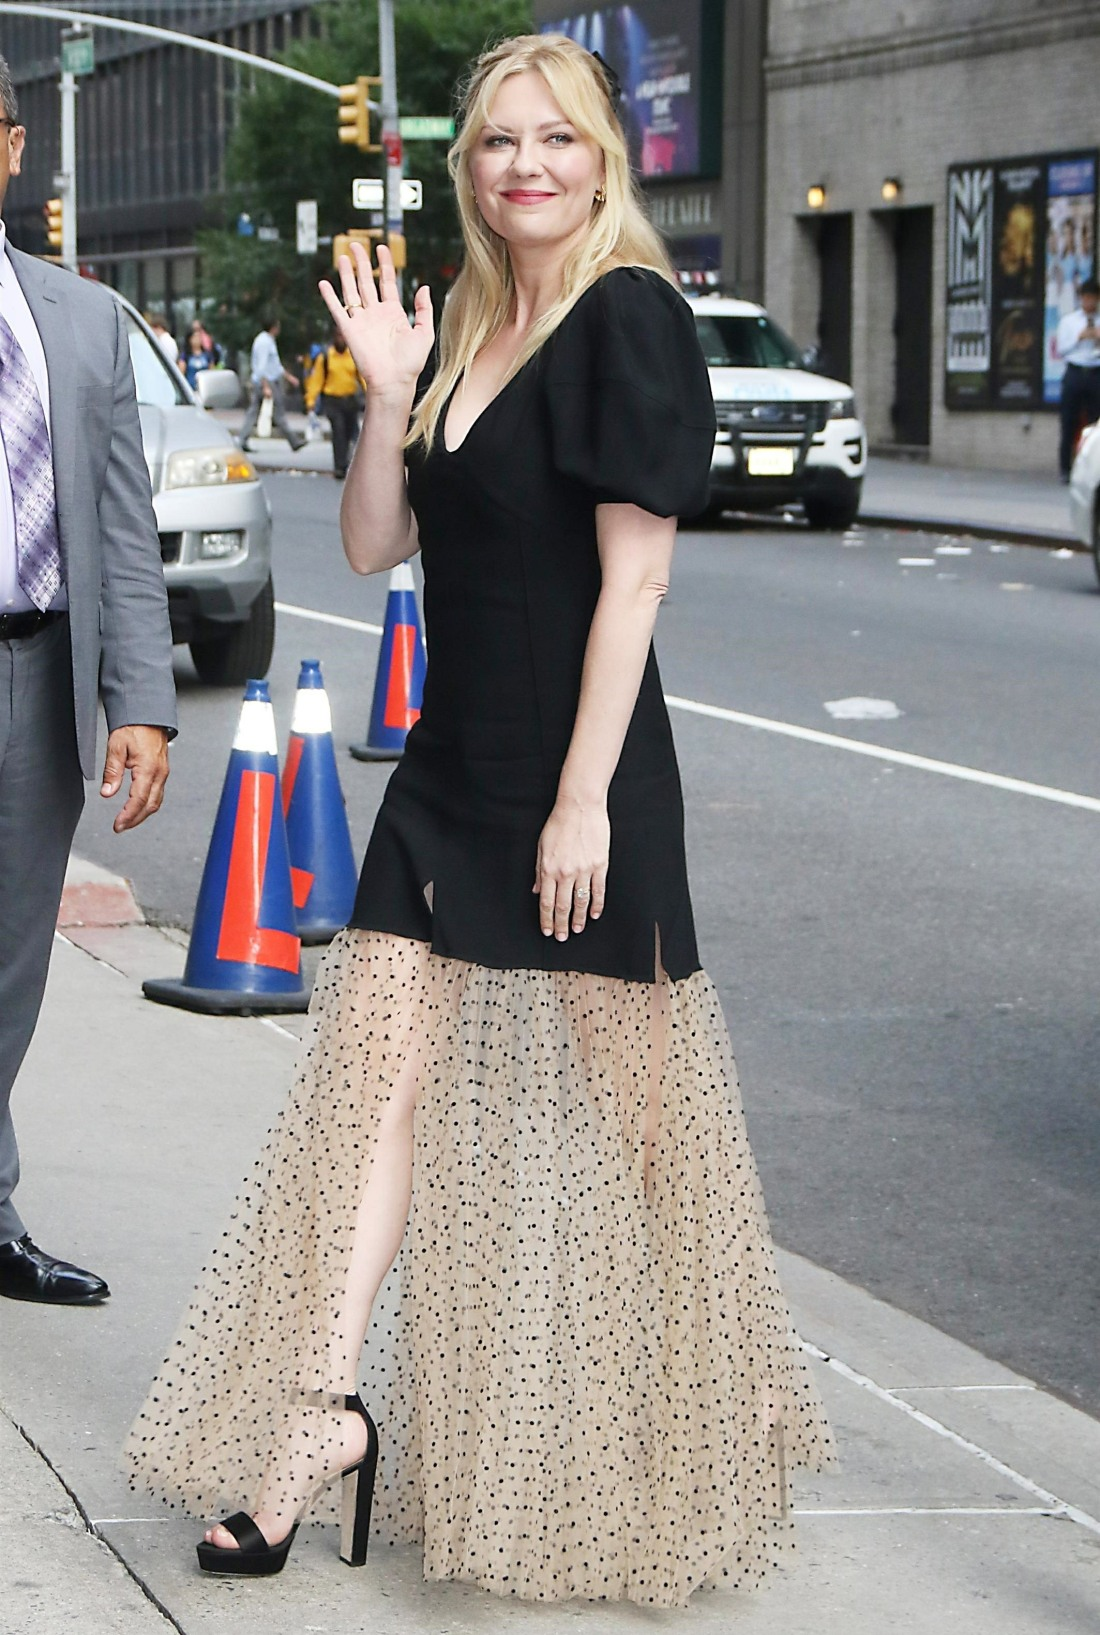 Kirsten Dunst at The Late Show with Stephen Colbert